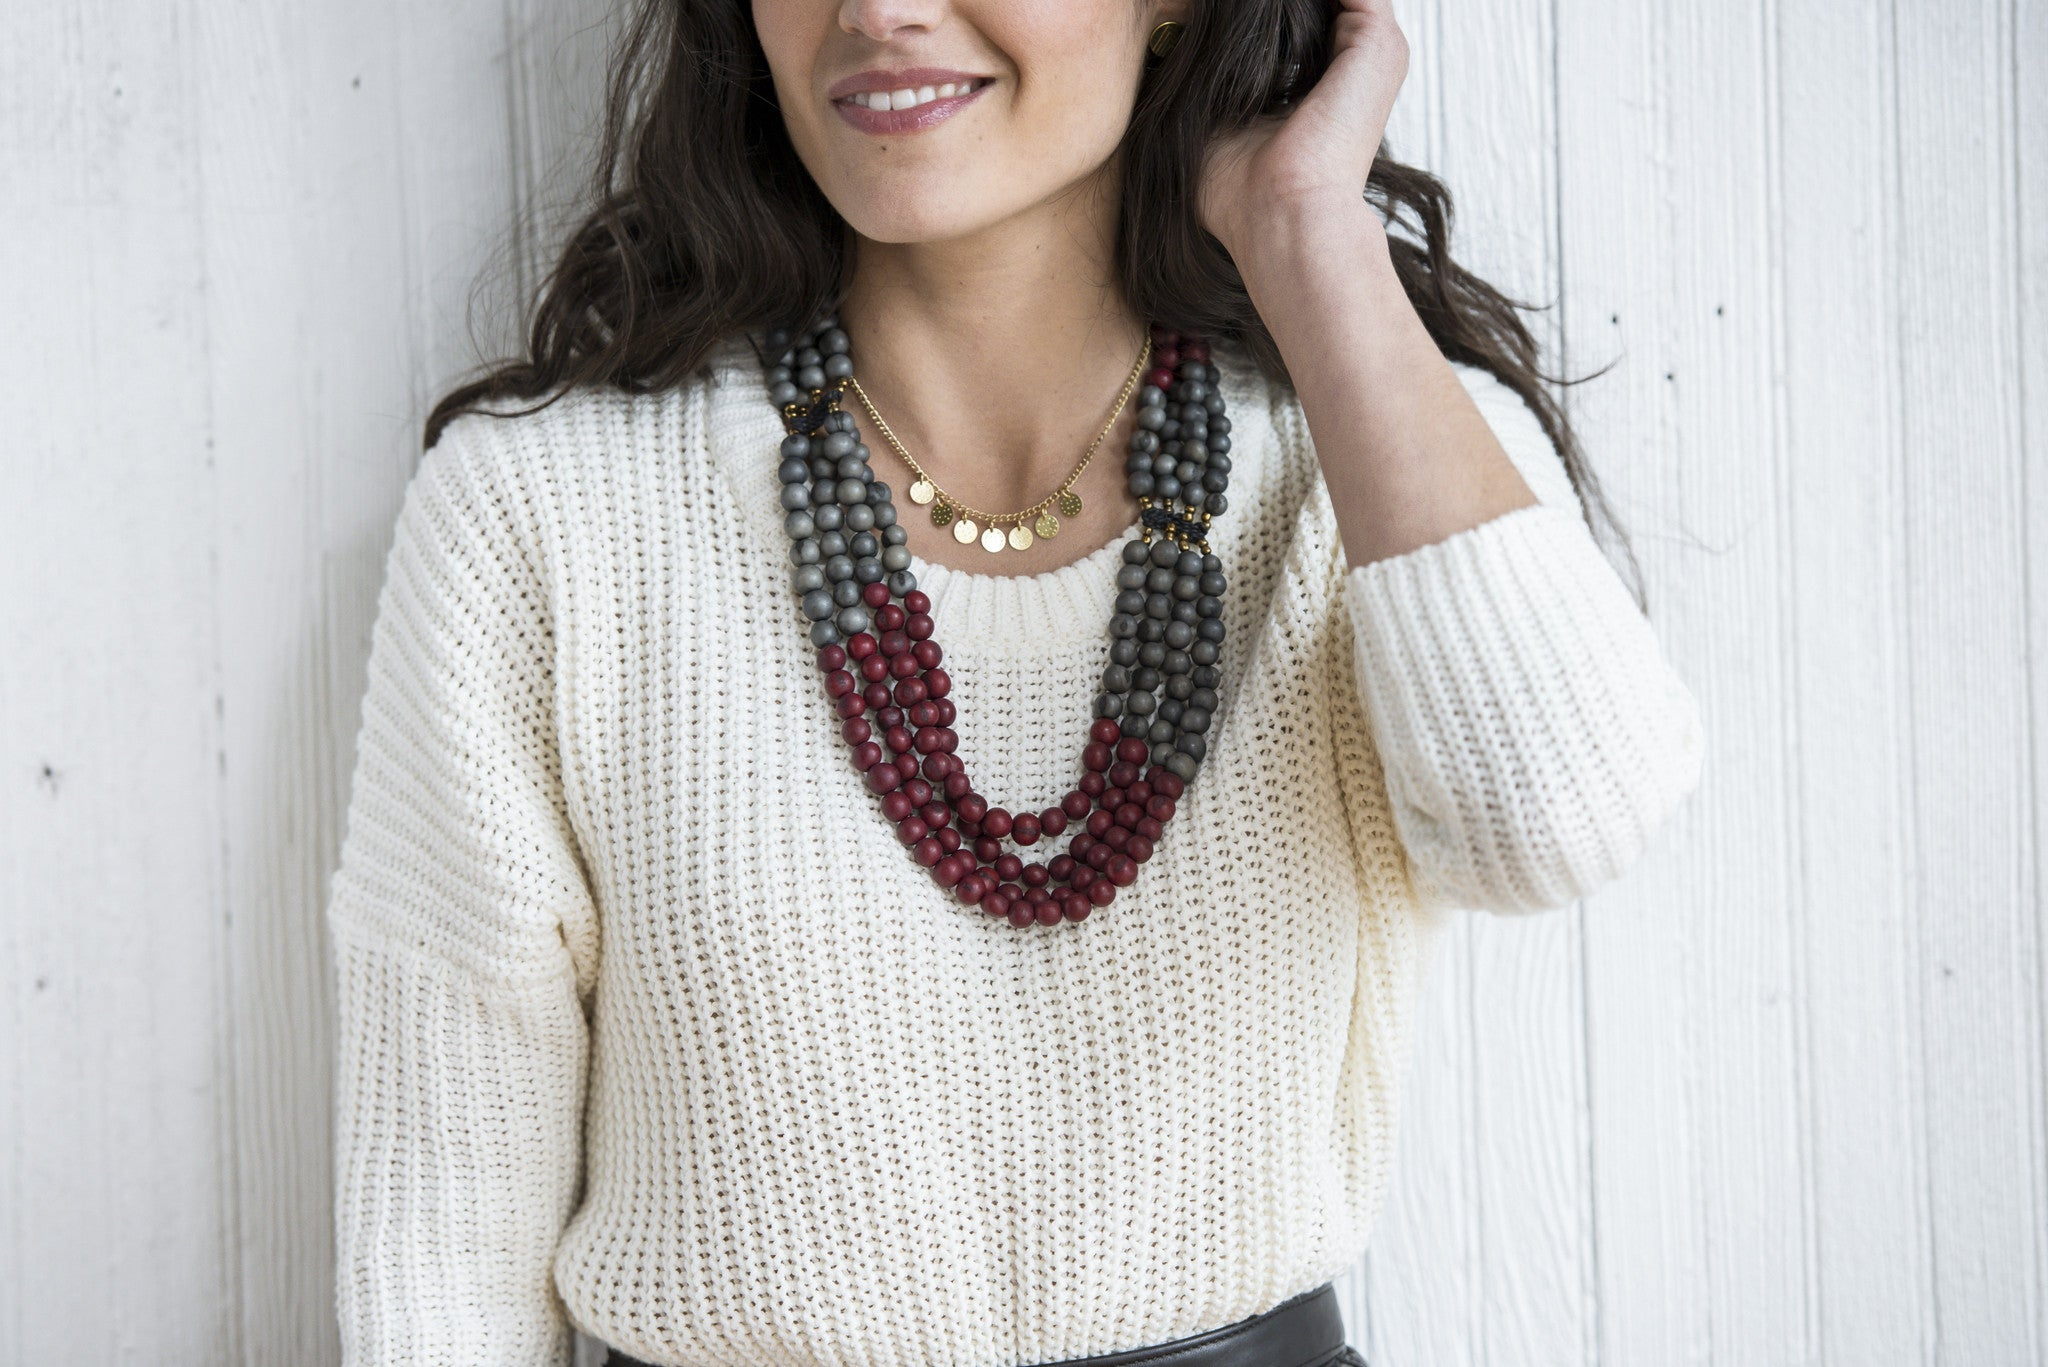 Mamani Necklace Indigo/Black Cherry